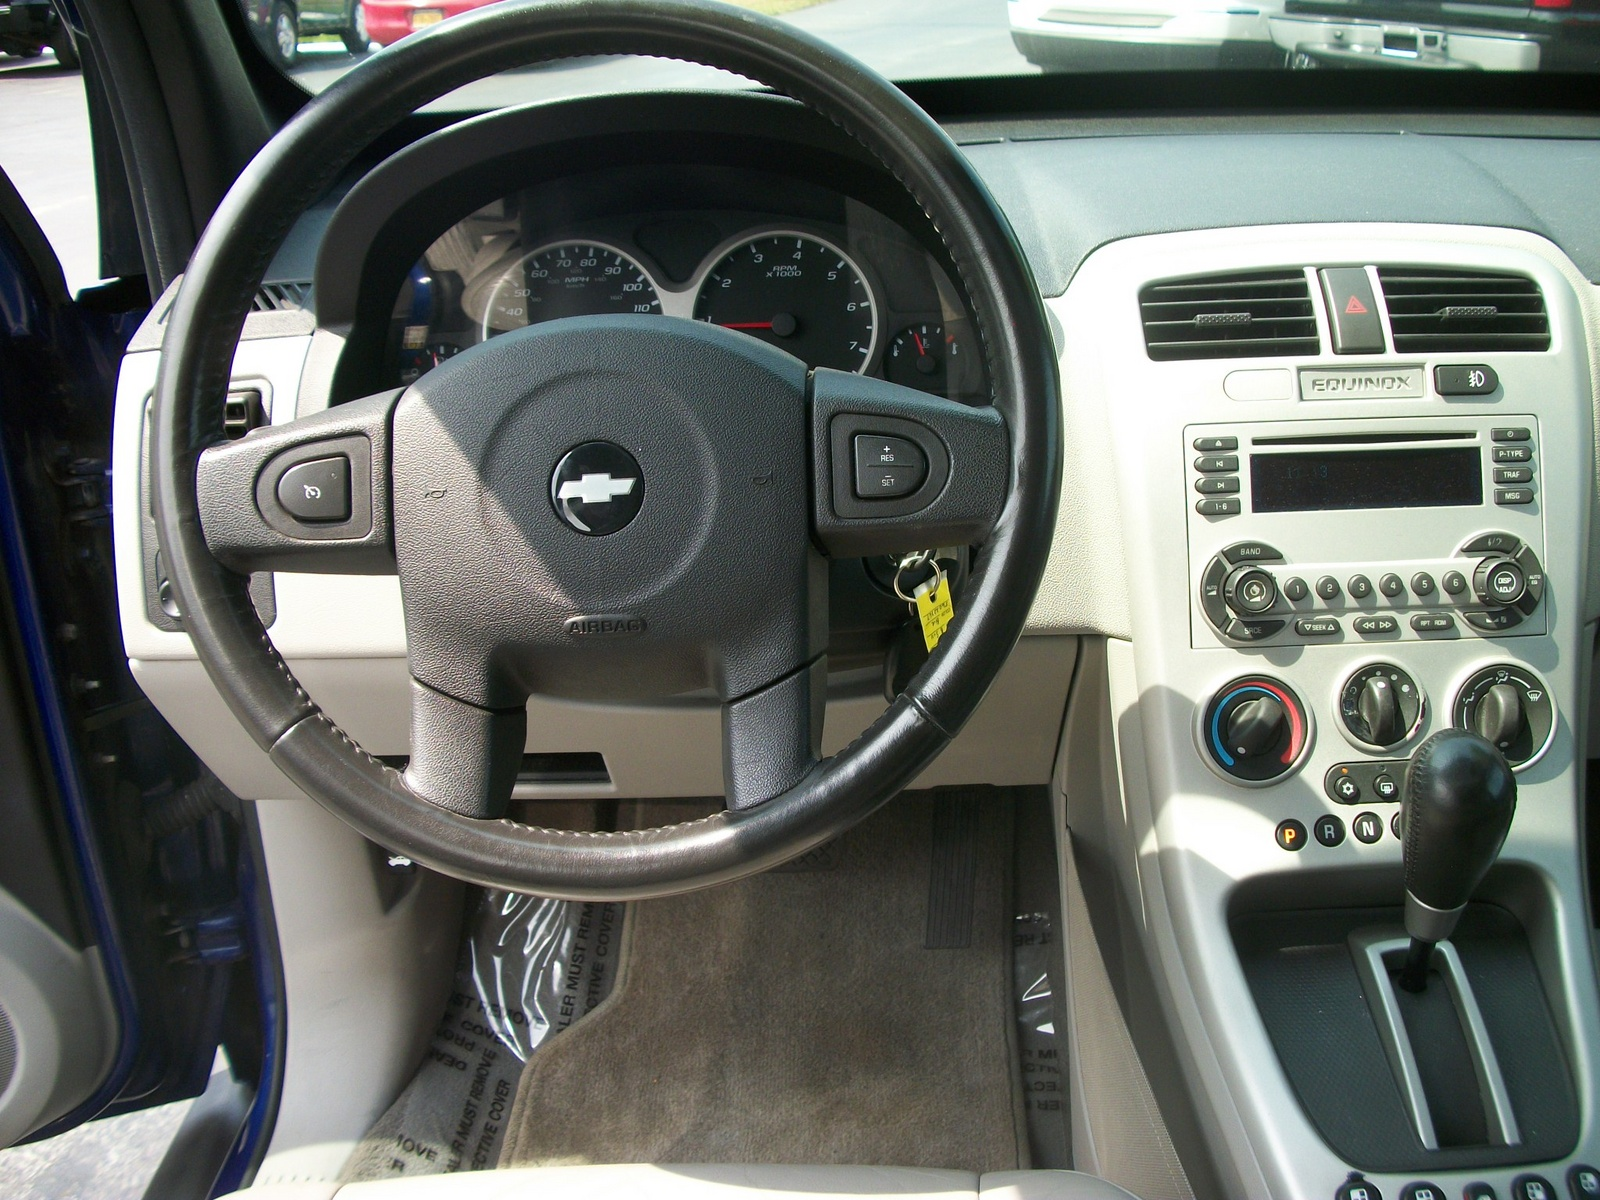 2005 chevy equinox interior for 2005 chevy equinox interior